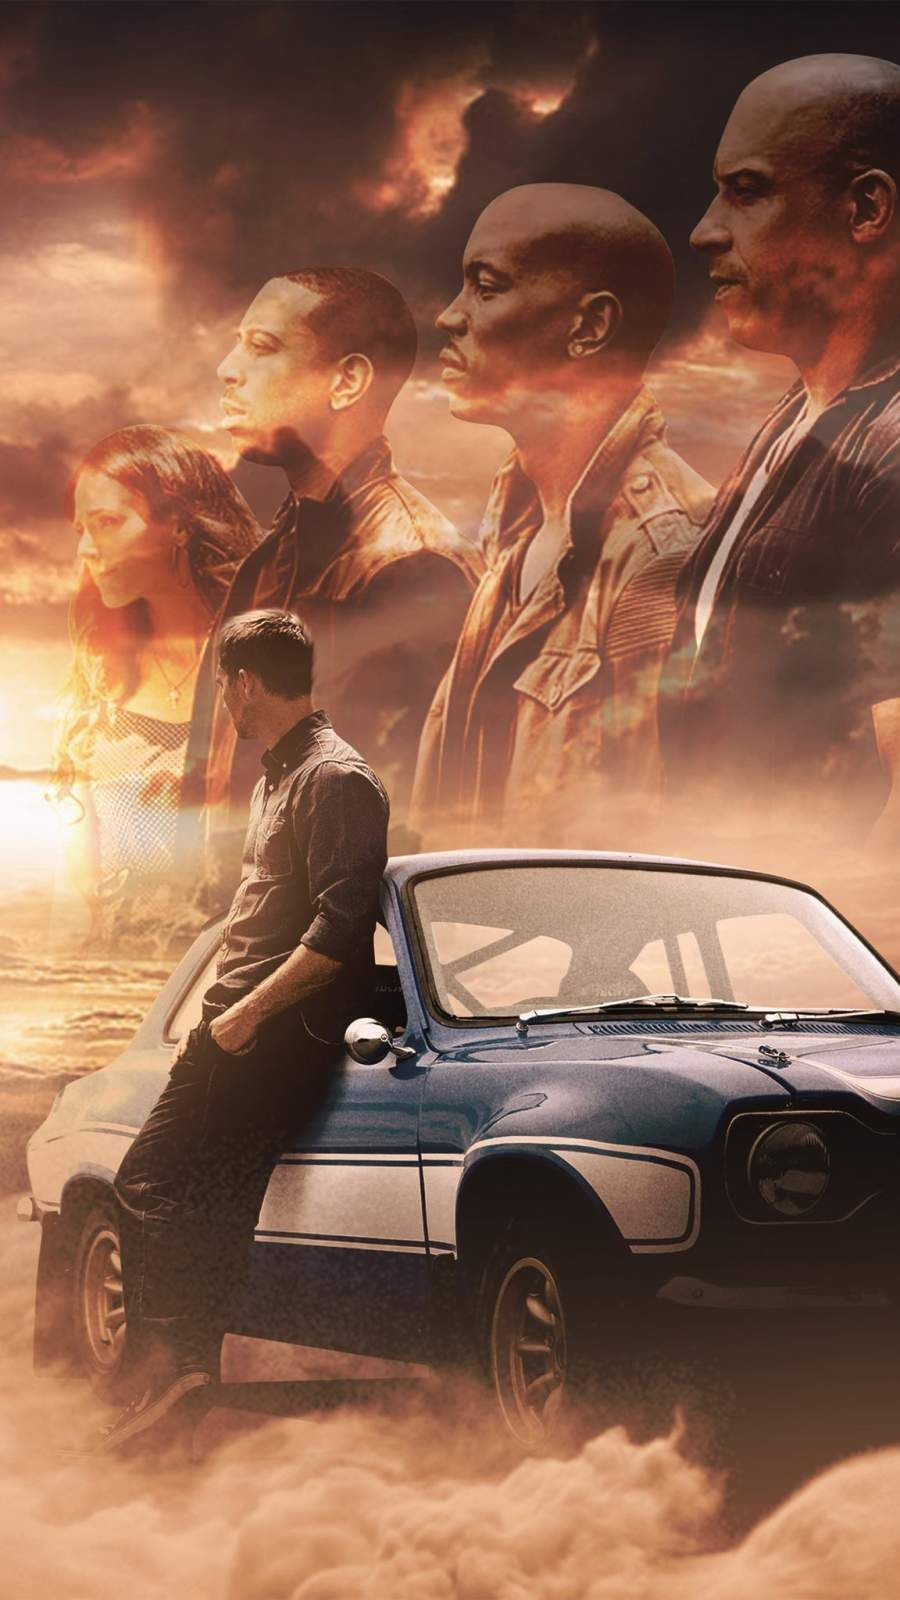 Harry potter aesthetic, harry potter pictures, harry, instagram, iphone,. Fast and Furious iPhone Wallpaper | Fast and furious, Paul